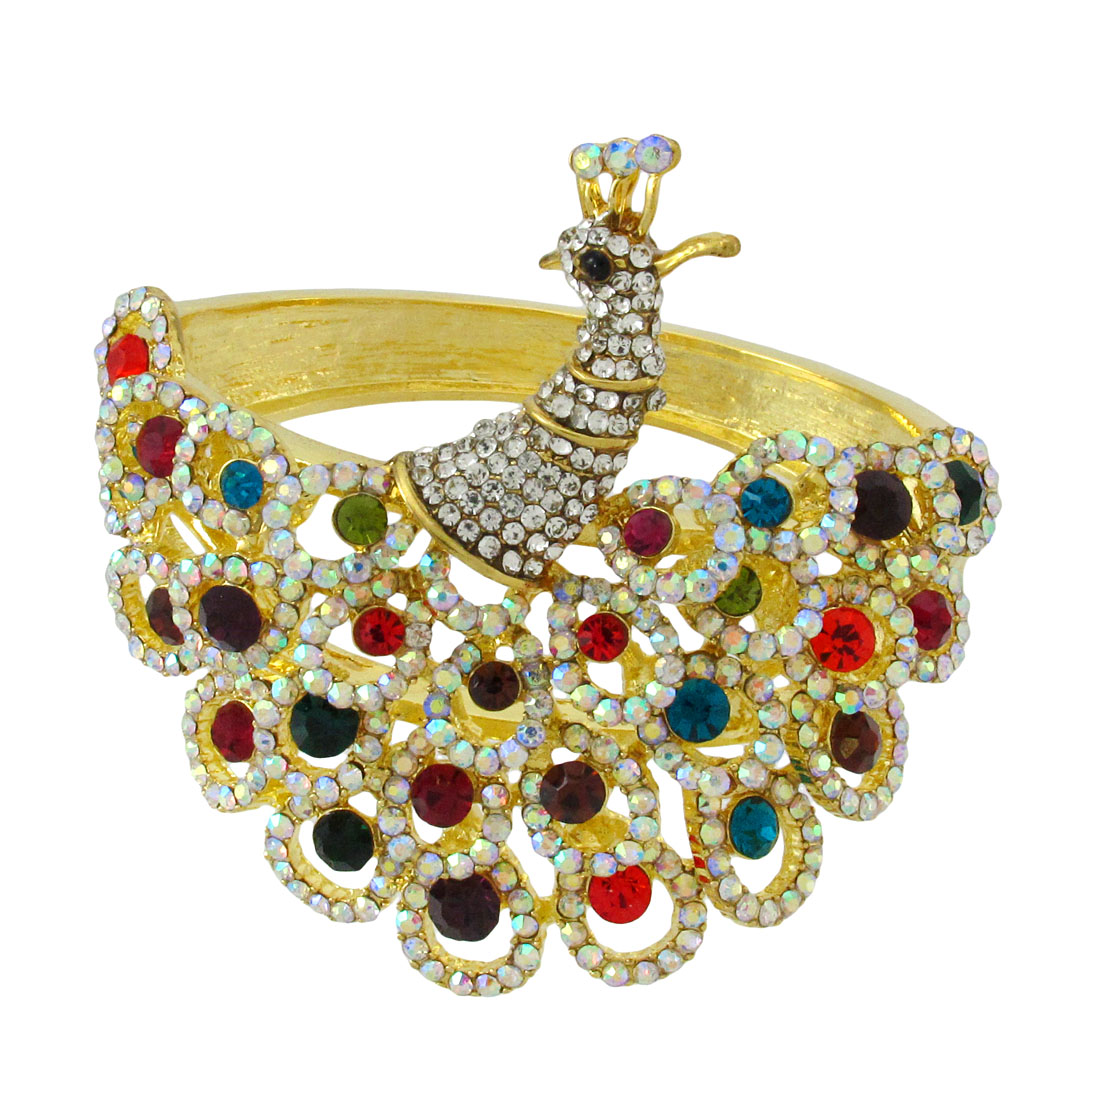 Goldtone Rhinestone Peacock Hinged Bangle Bracelet